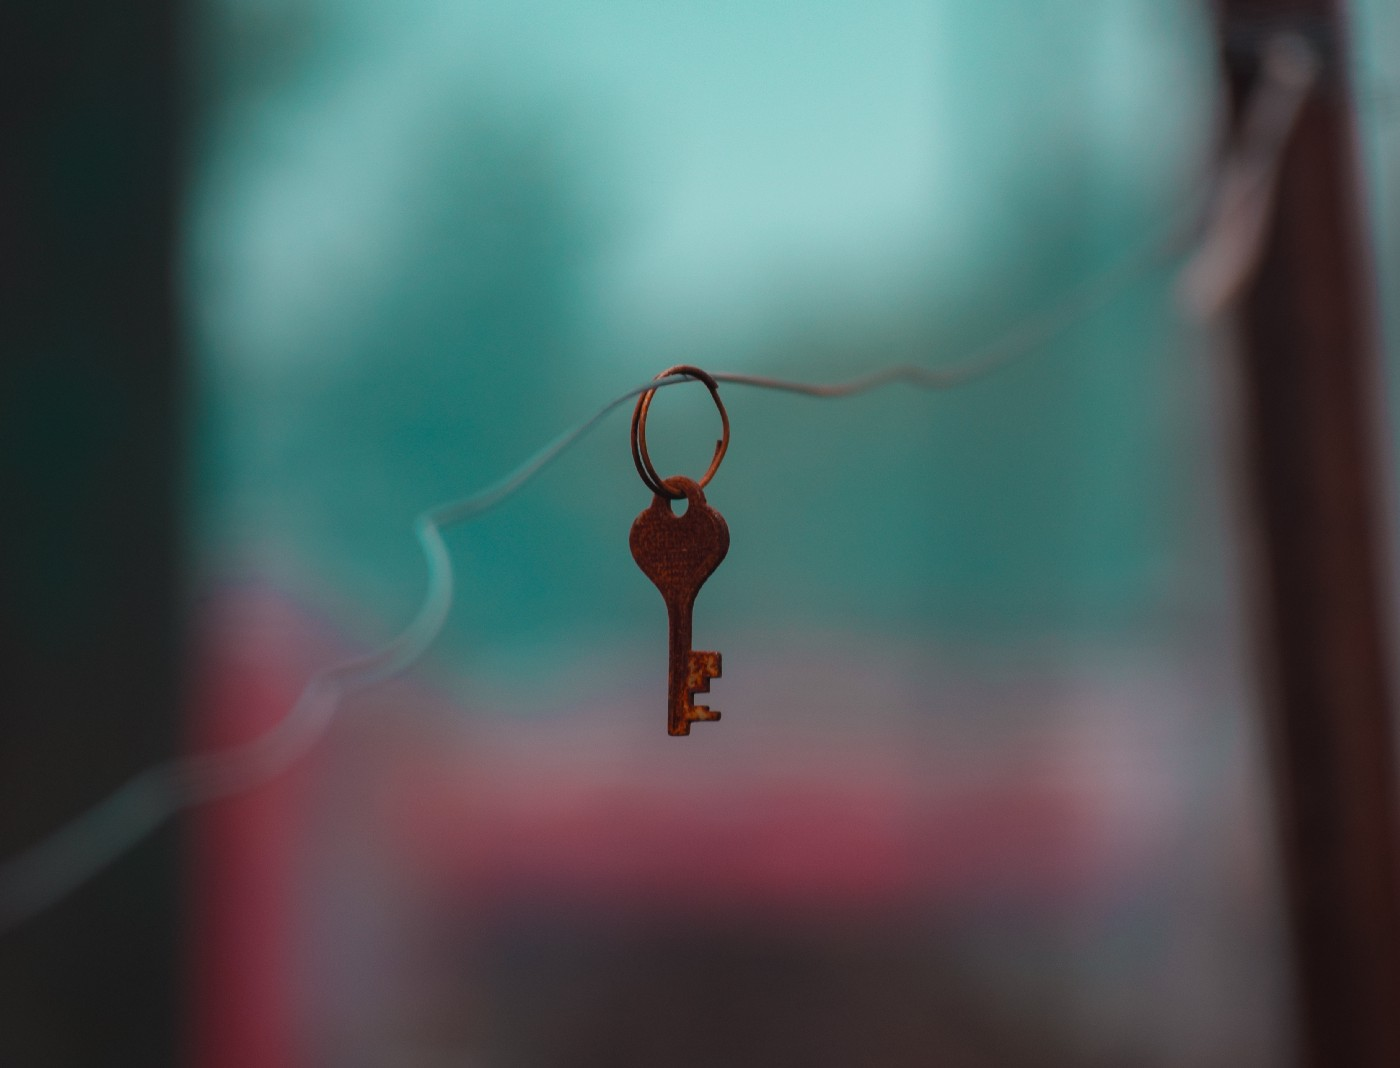 Photograph of a single key on a key chain loop, suspended from a thin, twisted wire passing horizontally through the loop.